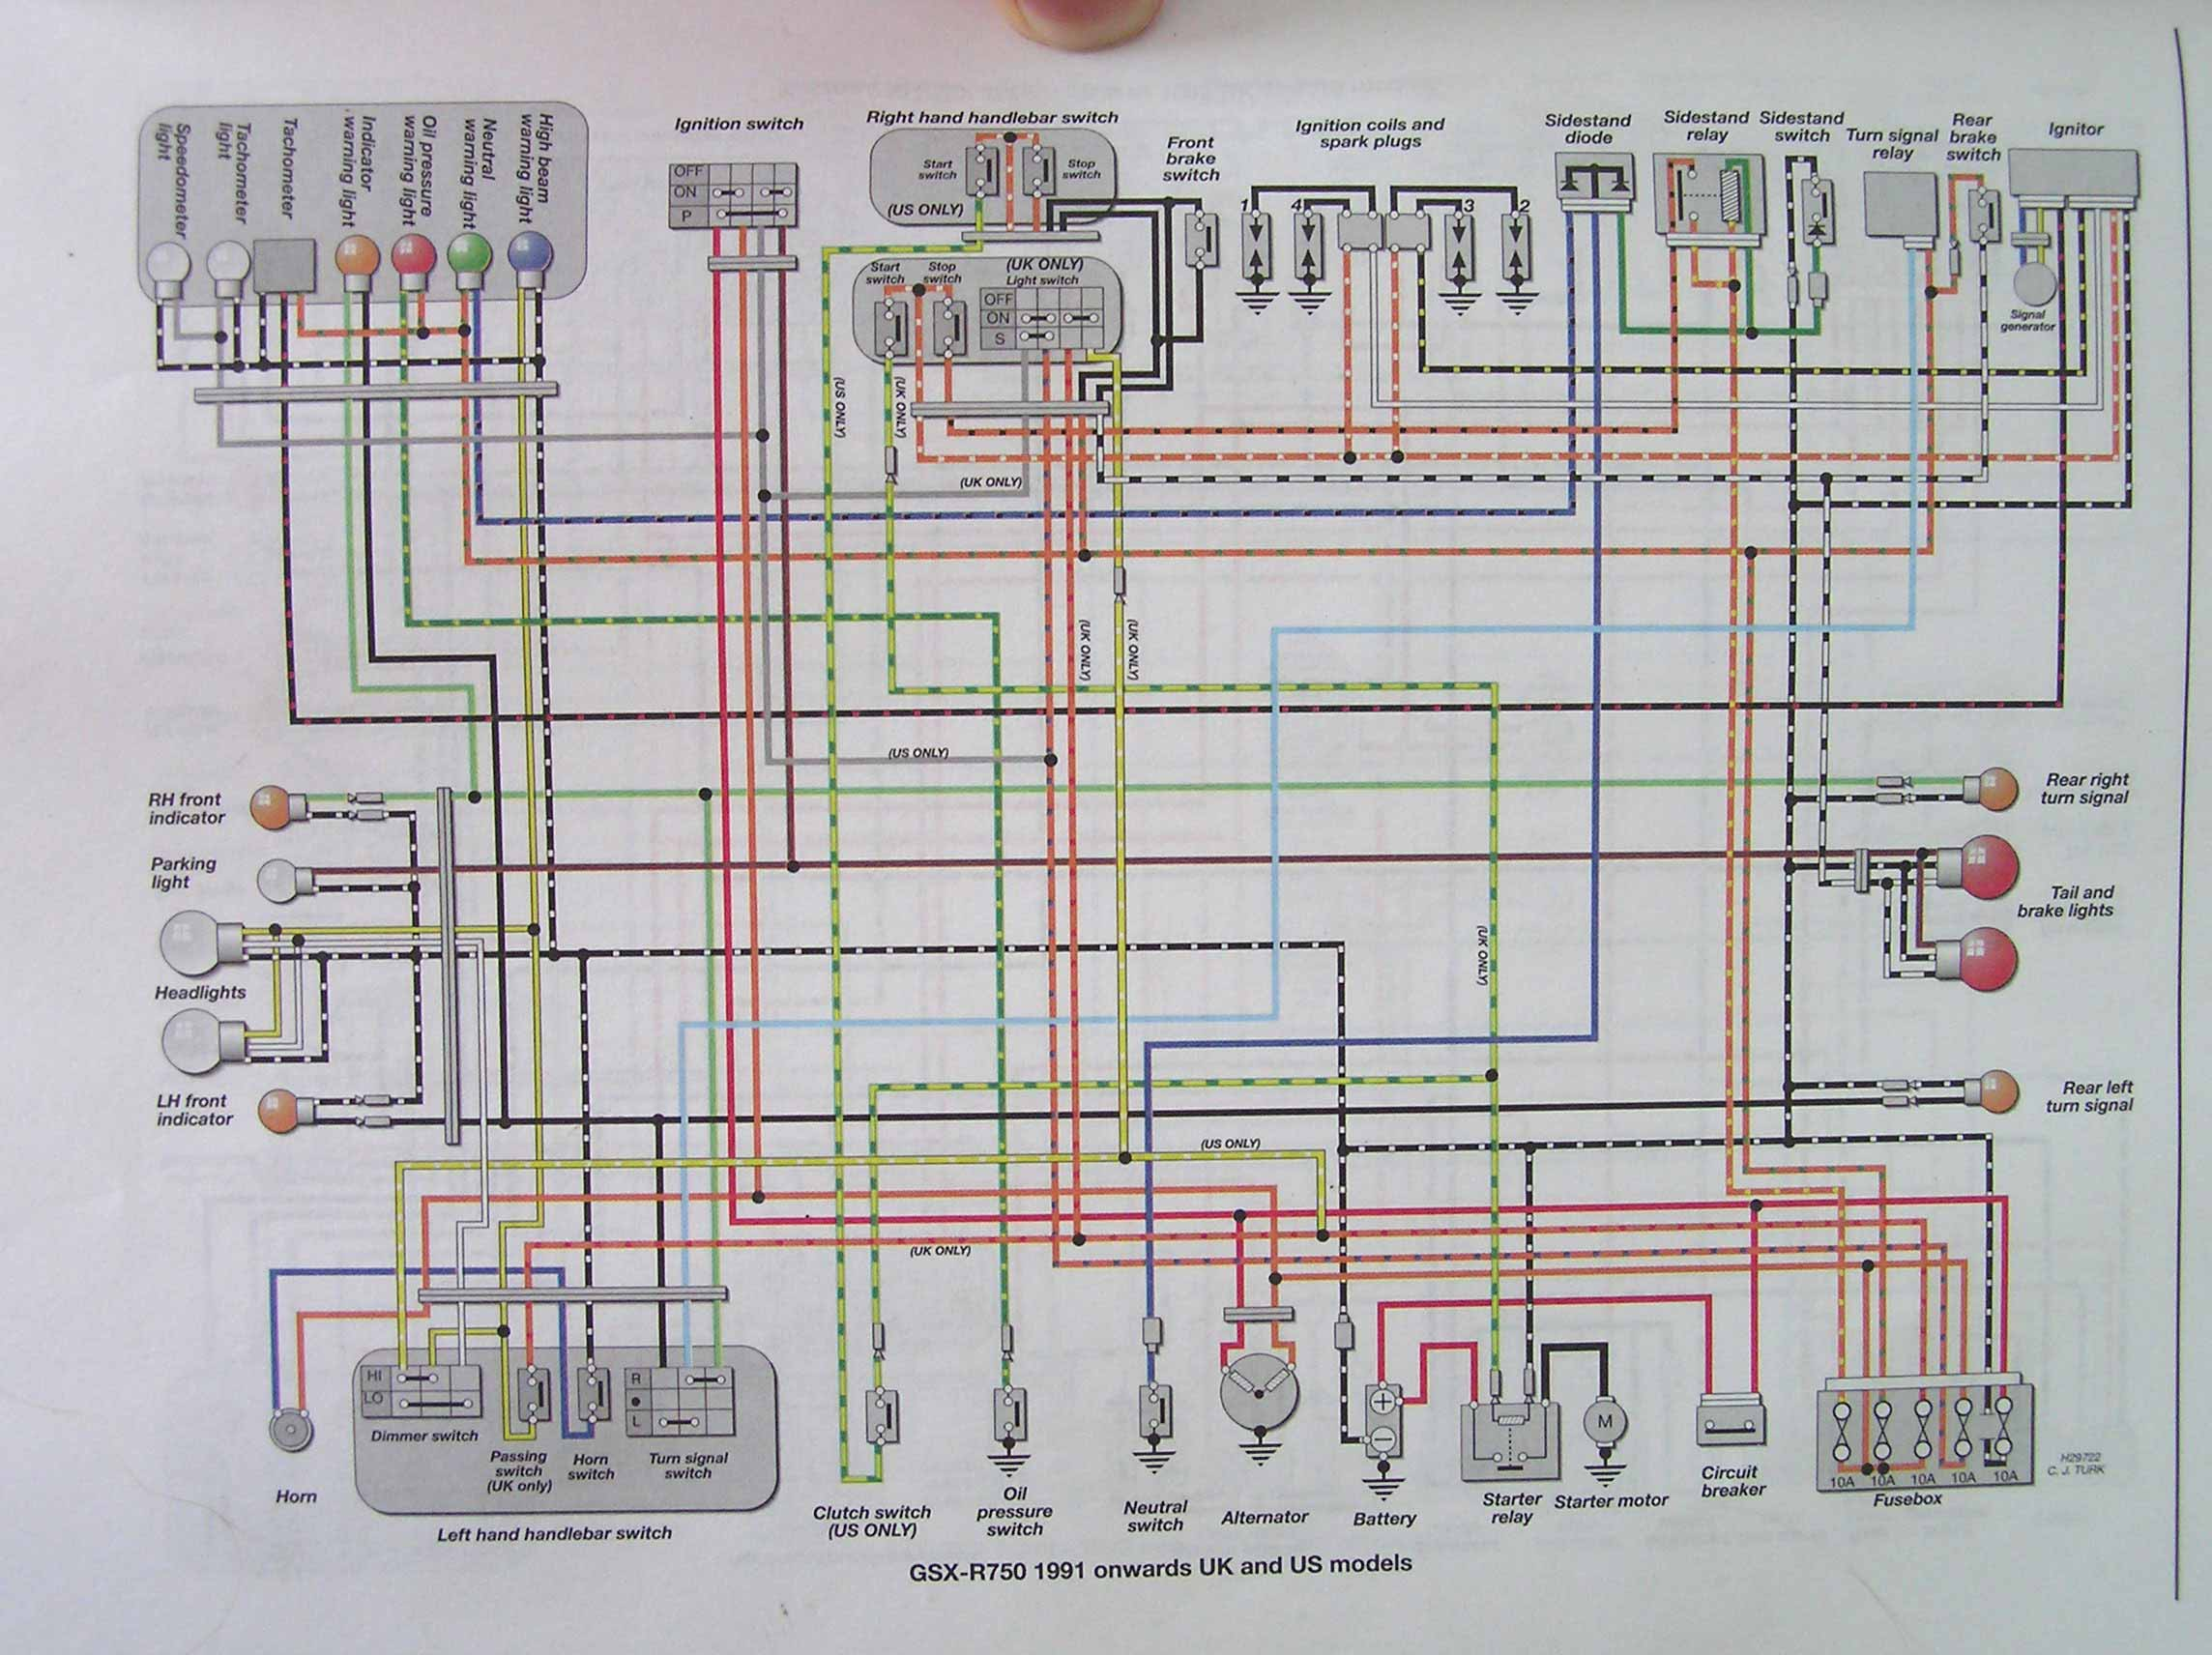 gsxr 1000 k5 wiring diagram - wiring diagram 2002 gsxr 750 wiring diagram 2000 gsxr 750 wire diagram